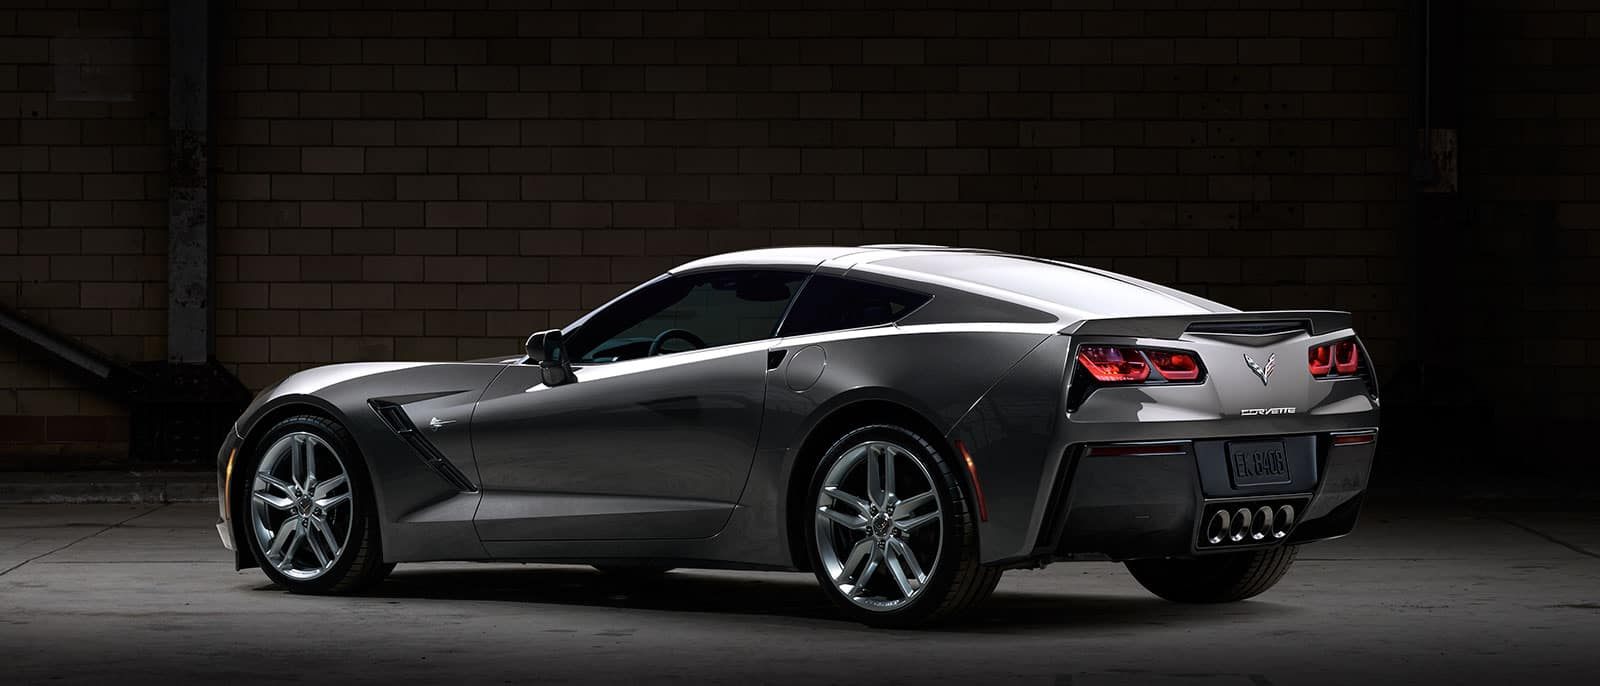 2015 chevrolet corvette stingray the stingray what can we say. Cars Review. Best American Auto & Cars Review